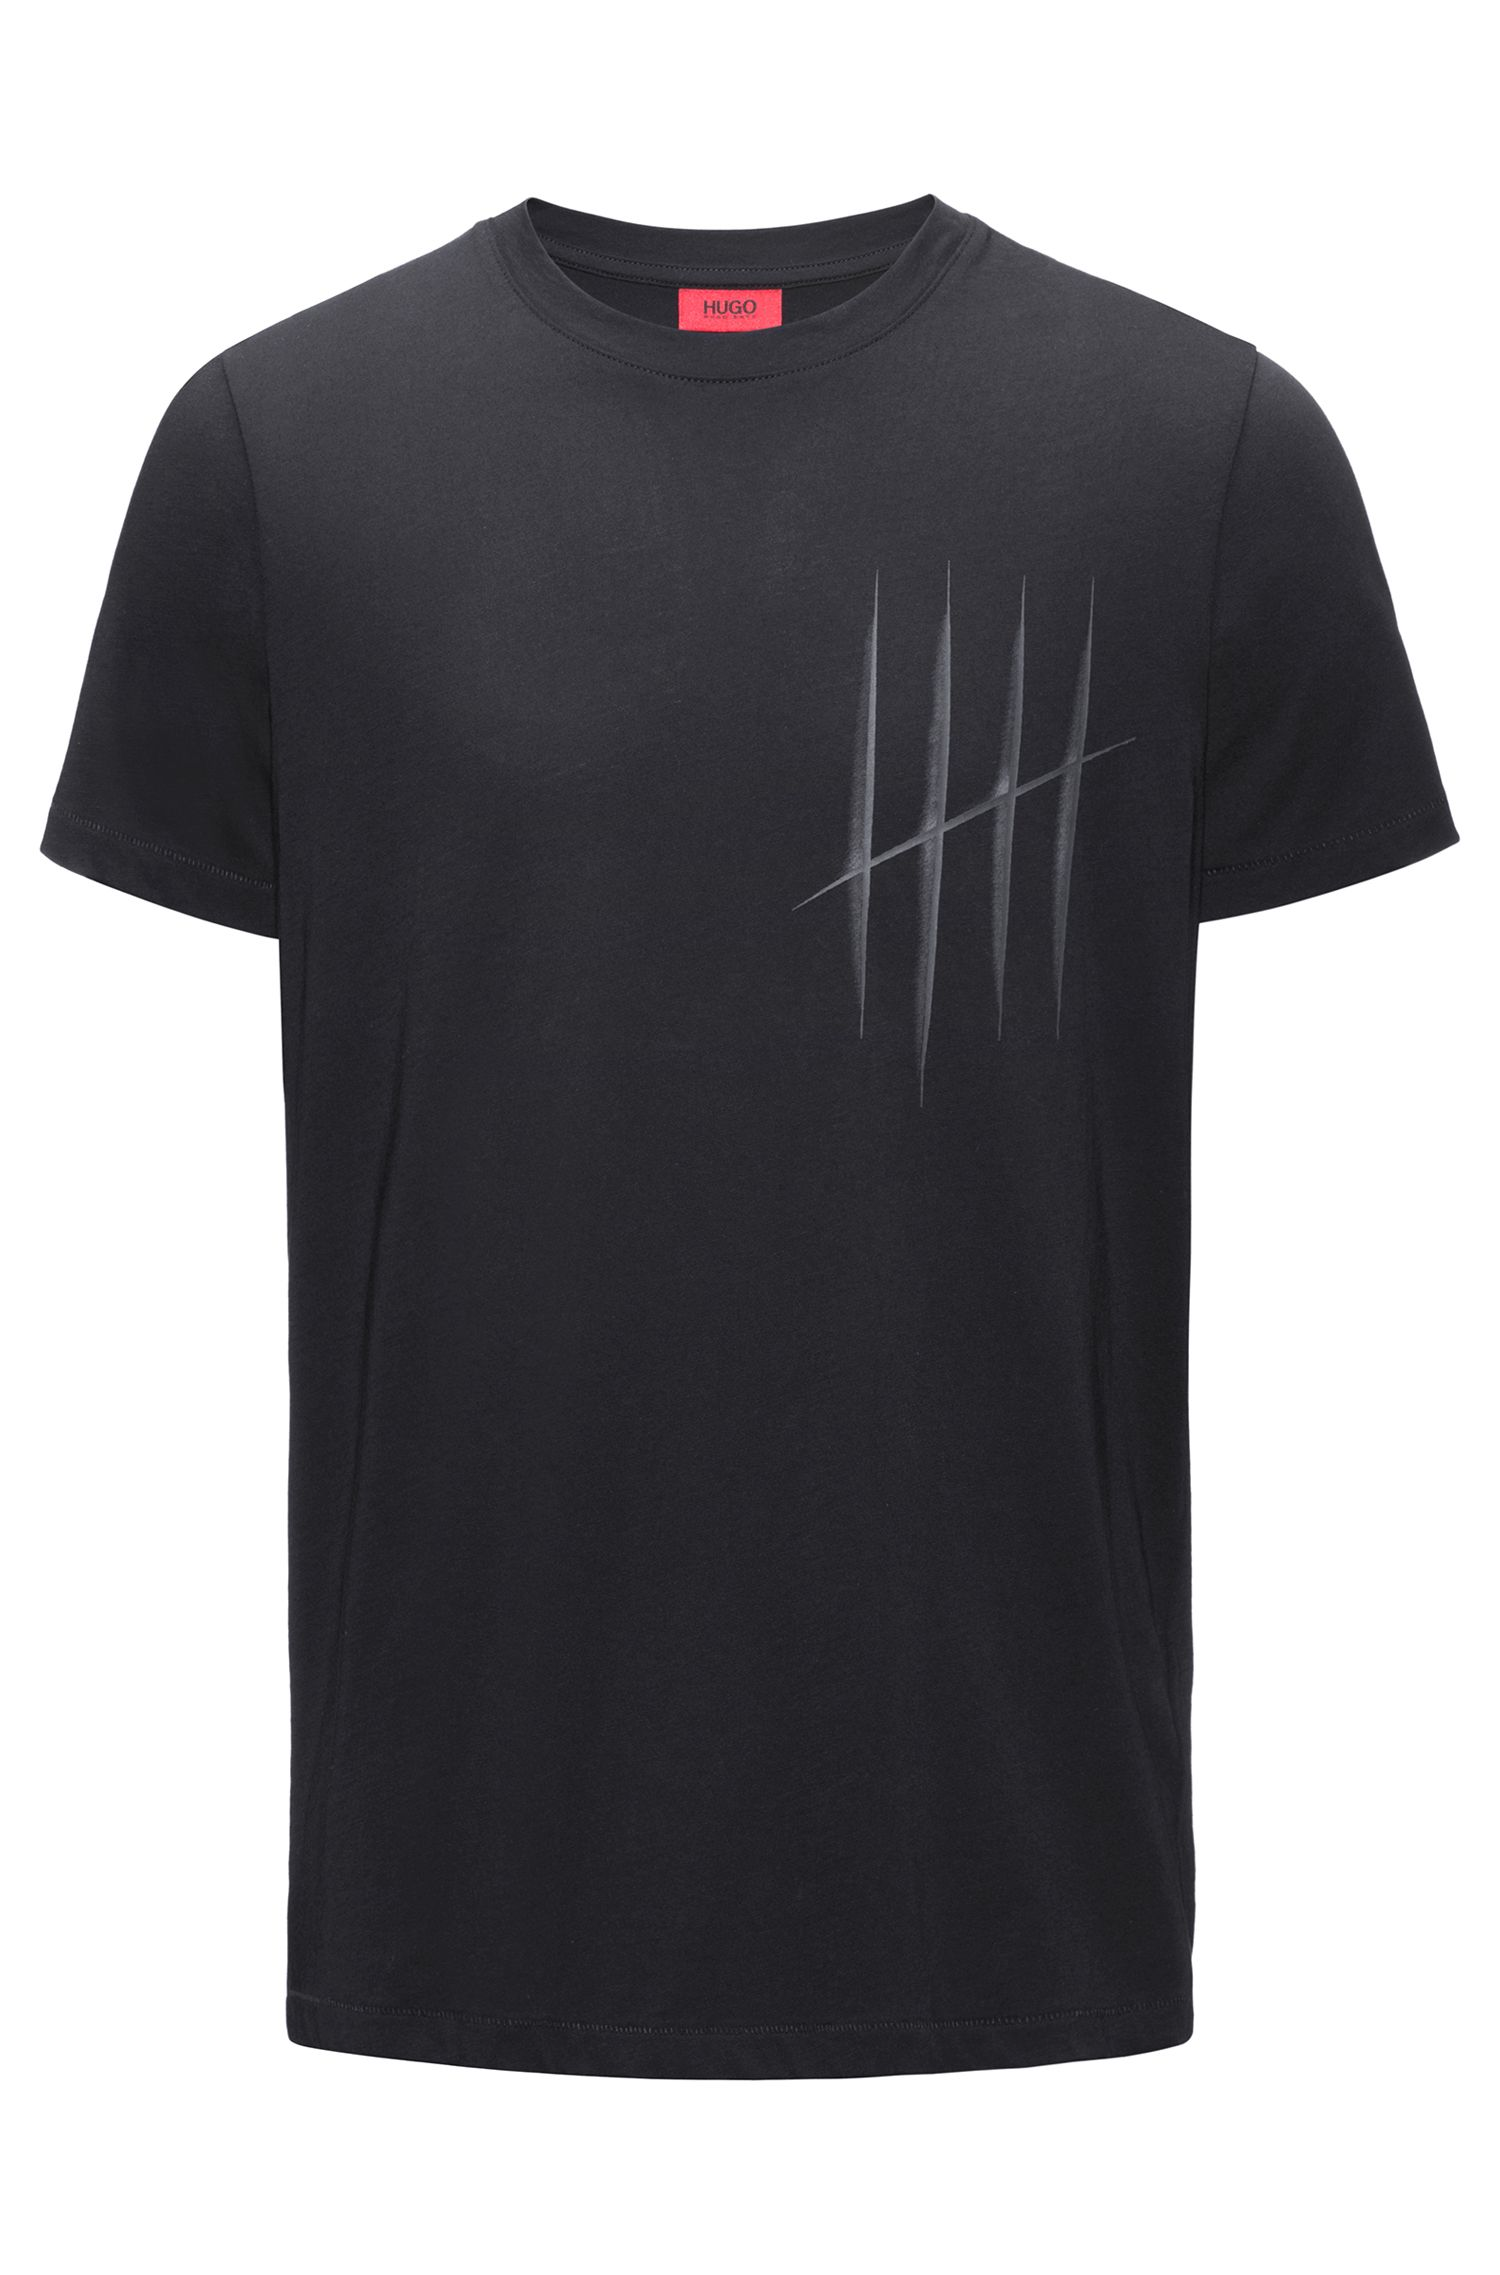 Jersey Graphic T-Shirt | Drison